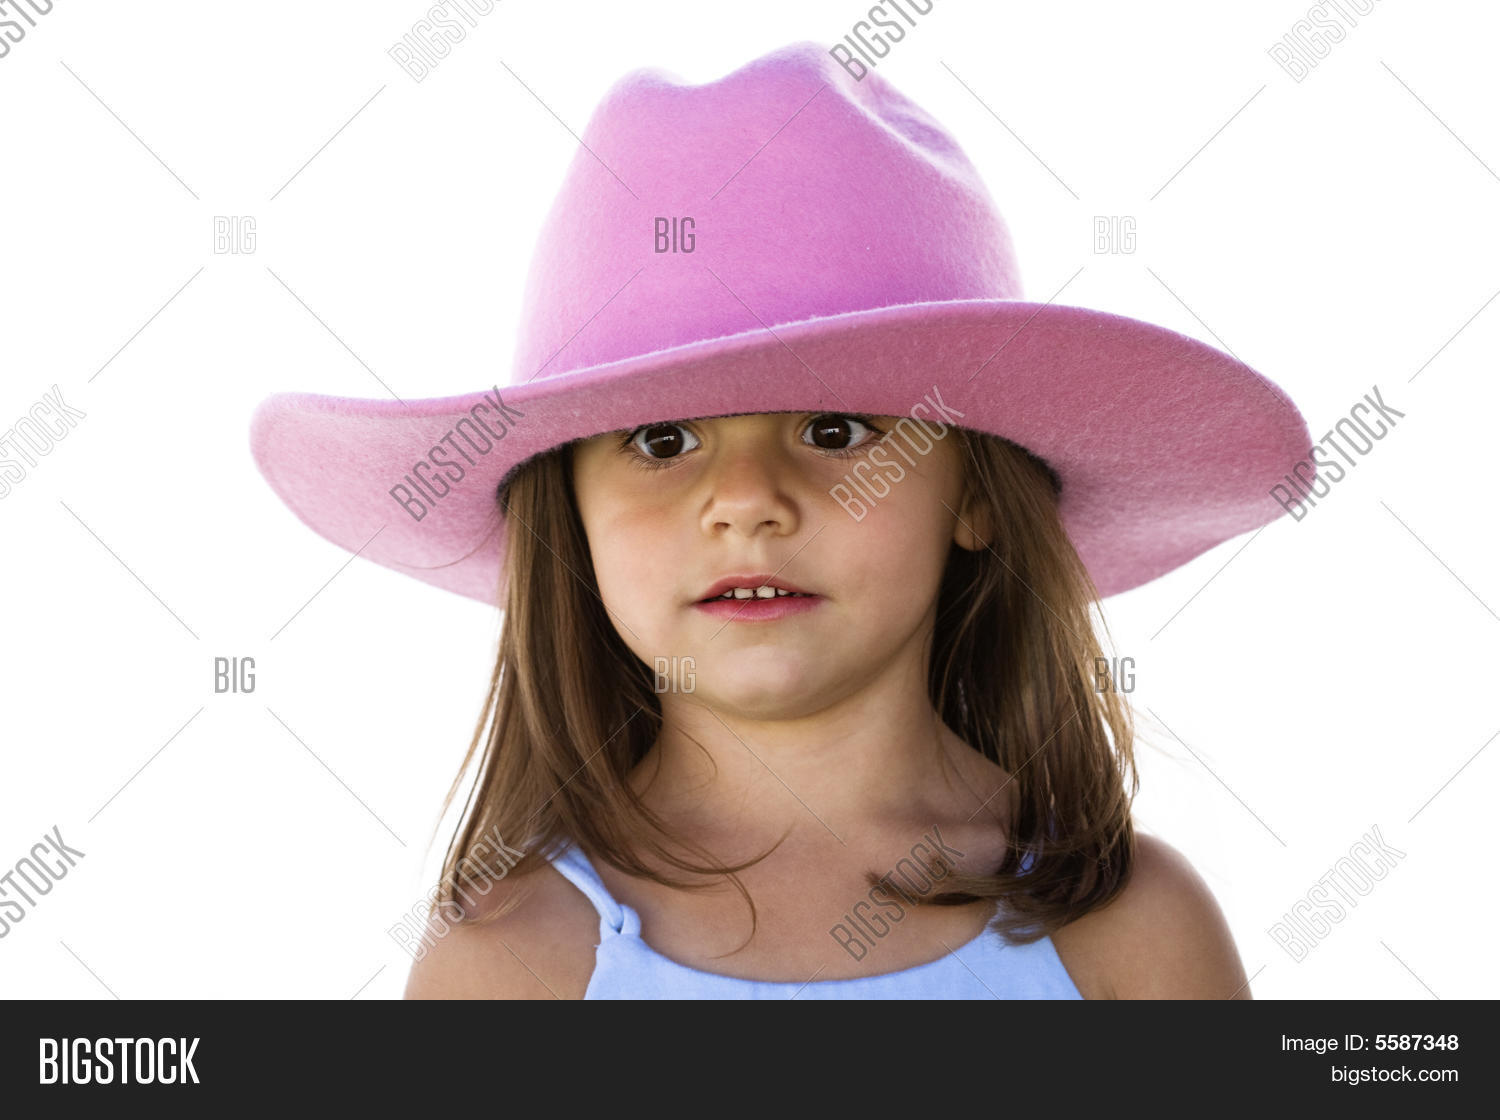 dcc8ca464 Silly Little Cowgirl Image & Photo (Free Trial)   Bigstock